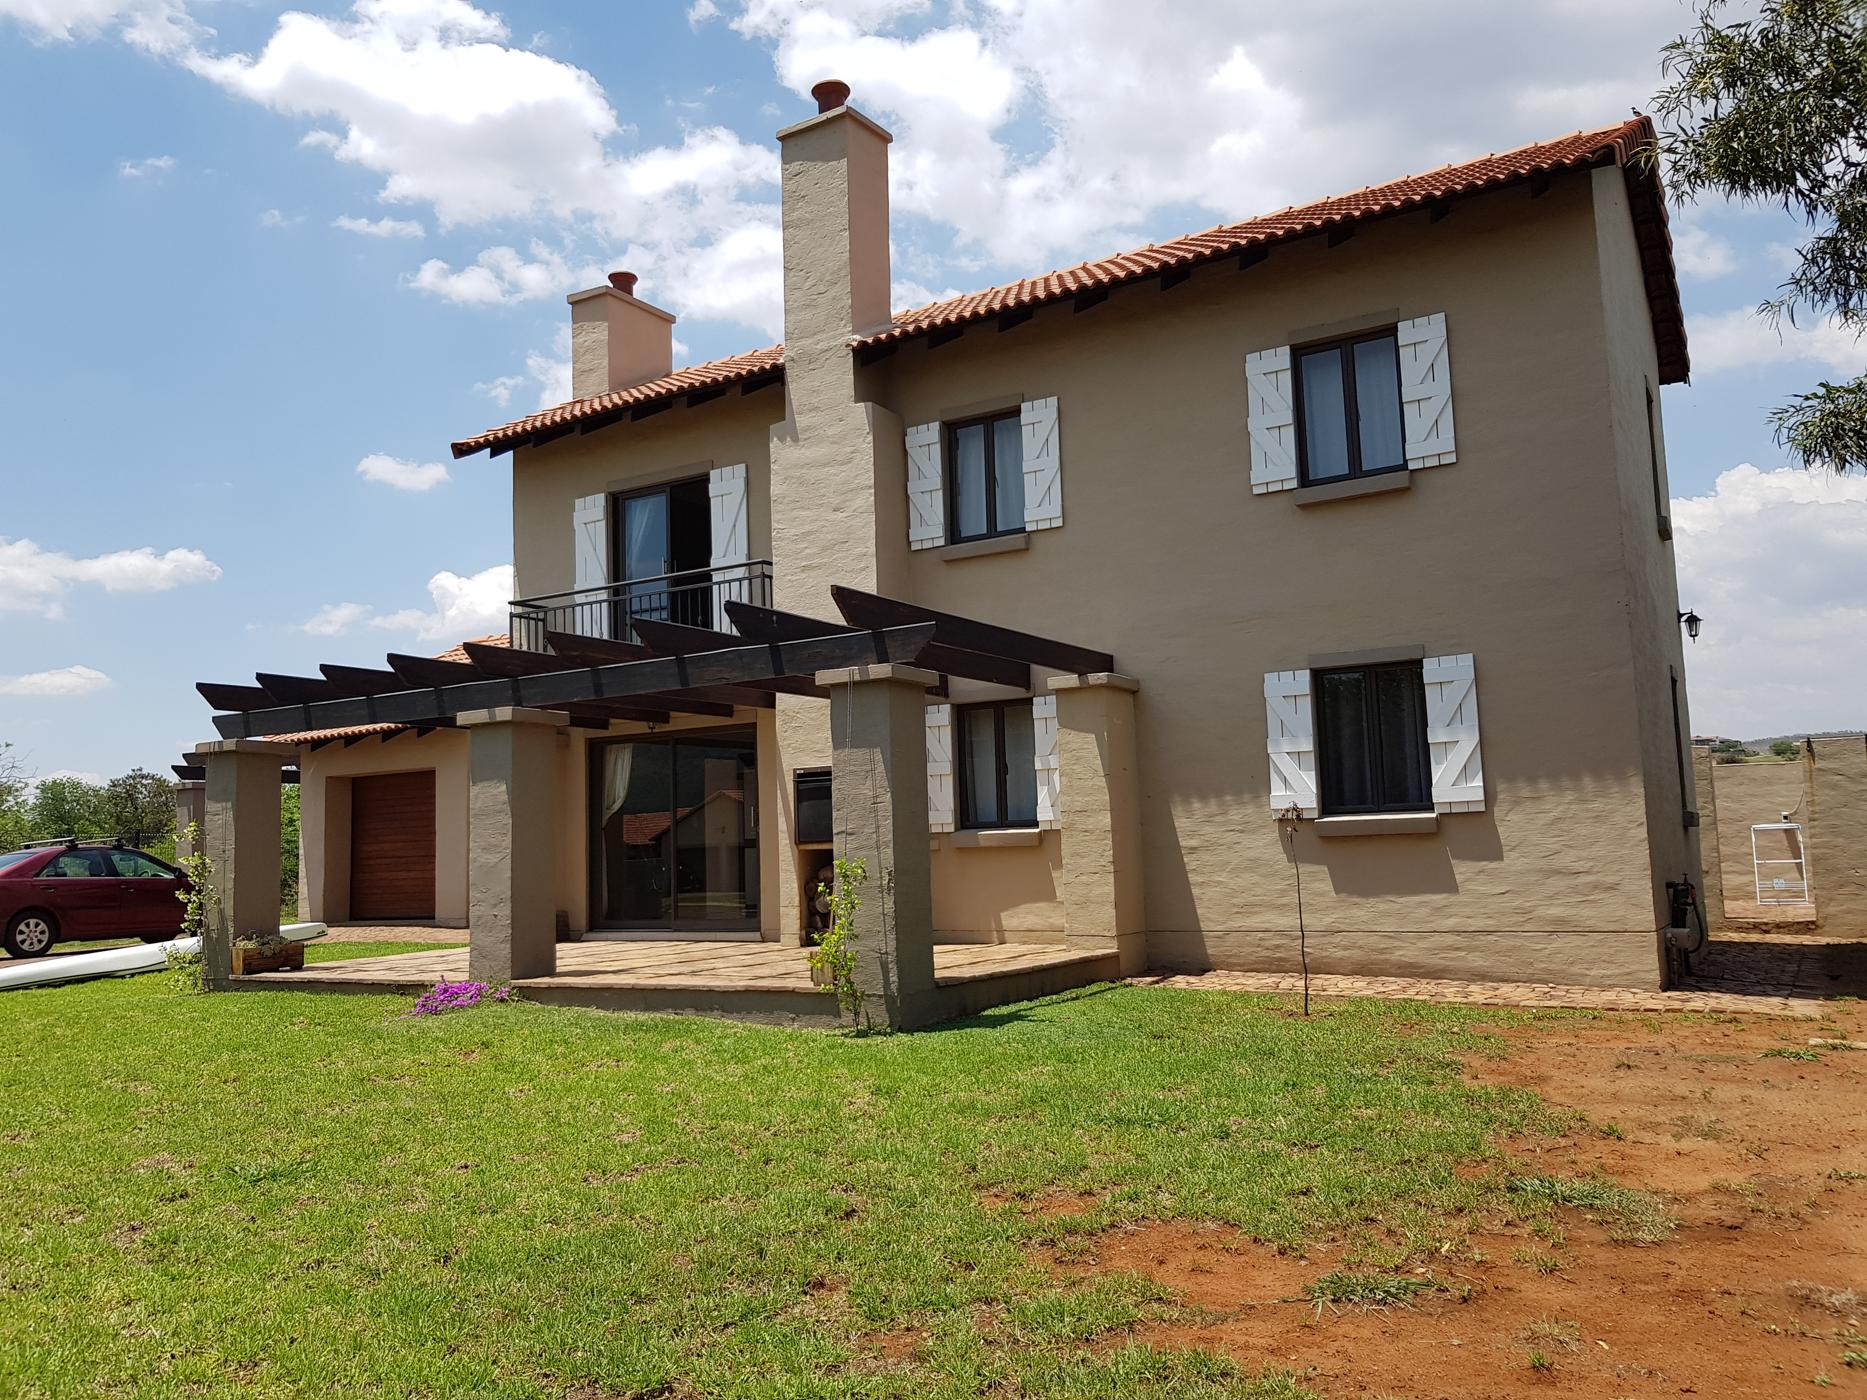 https://listing.pamgolding.co.za/images/properties/201905/1361978/H/1361978_H_1.jpg